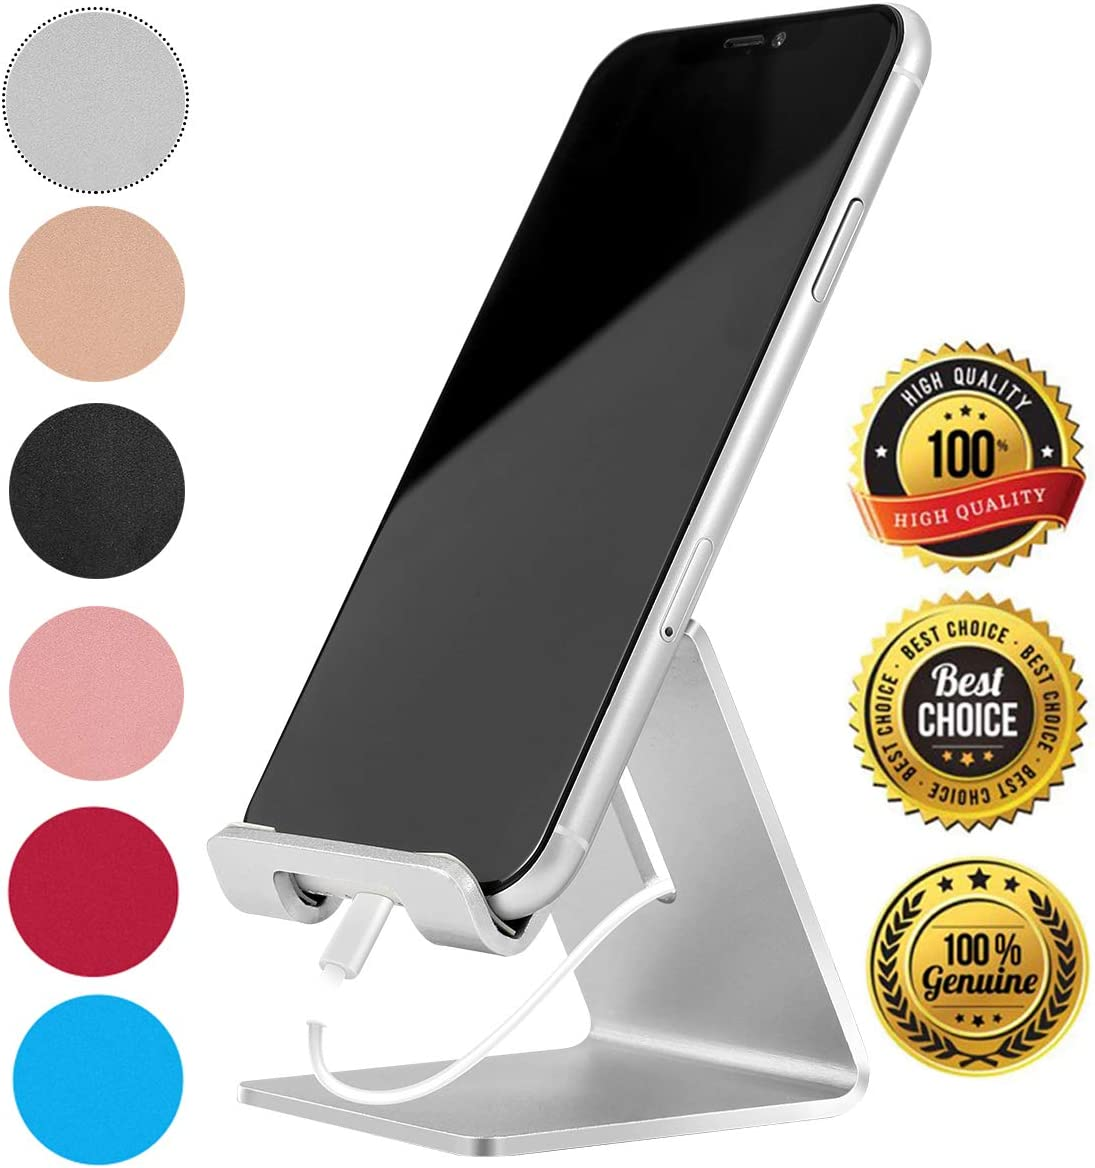 Desk Cell Phone Stand Holder Aluminum Phone Dock Cradle Compatible with Switch, All Android Smartphone, for iPhone 11 Pro Xs Xs Max Xr X 8 7 6 6s Plus 5 5s 5c Charging, Accessories Desk (Silver) …